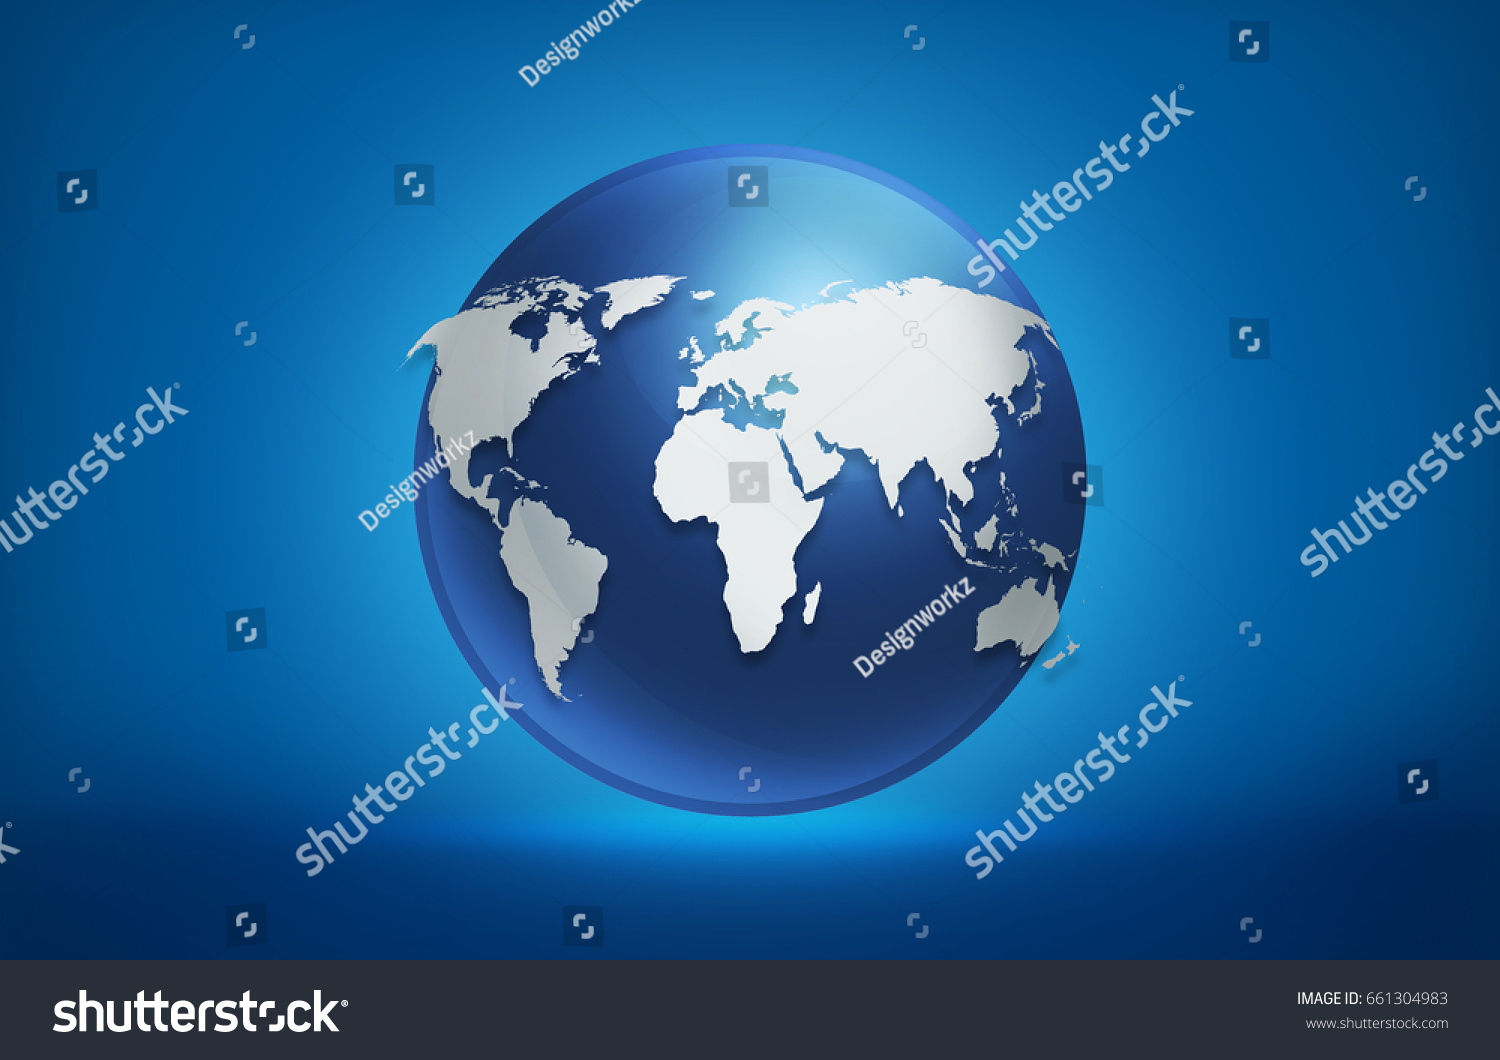 Globe world map background high resolution stock illustration globe world map background high resolution stock illustration 661304983 shutterstock gumiabroncs Choice Image